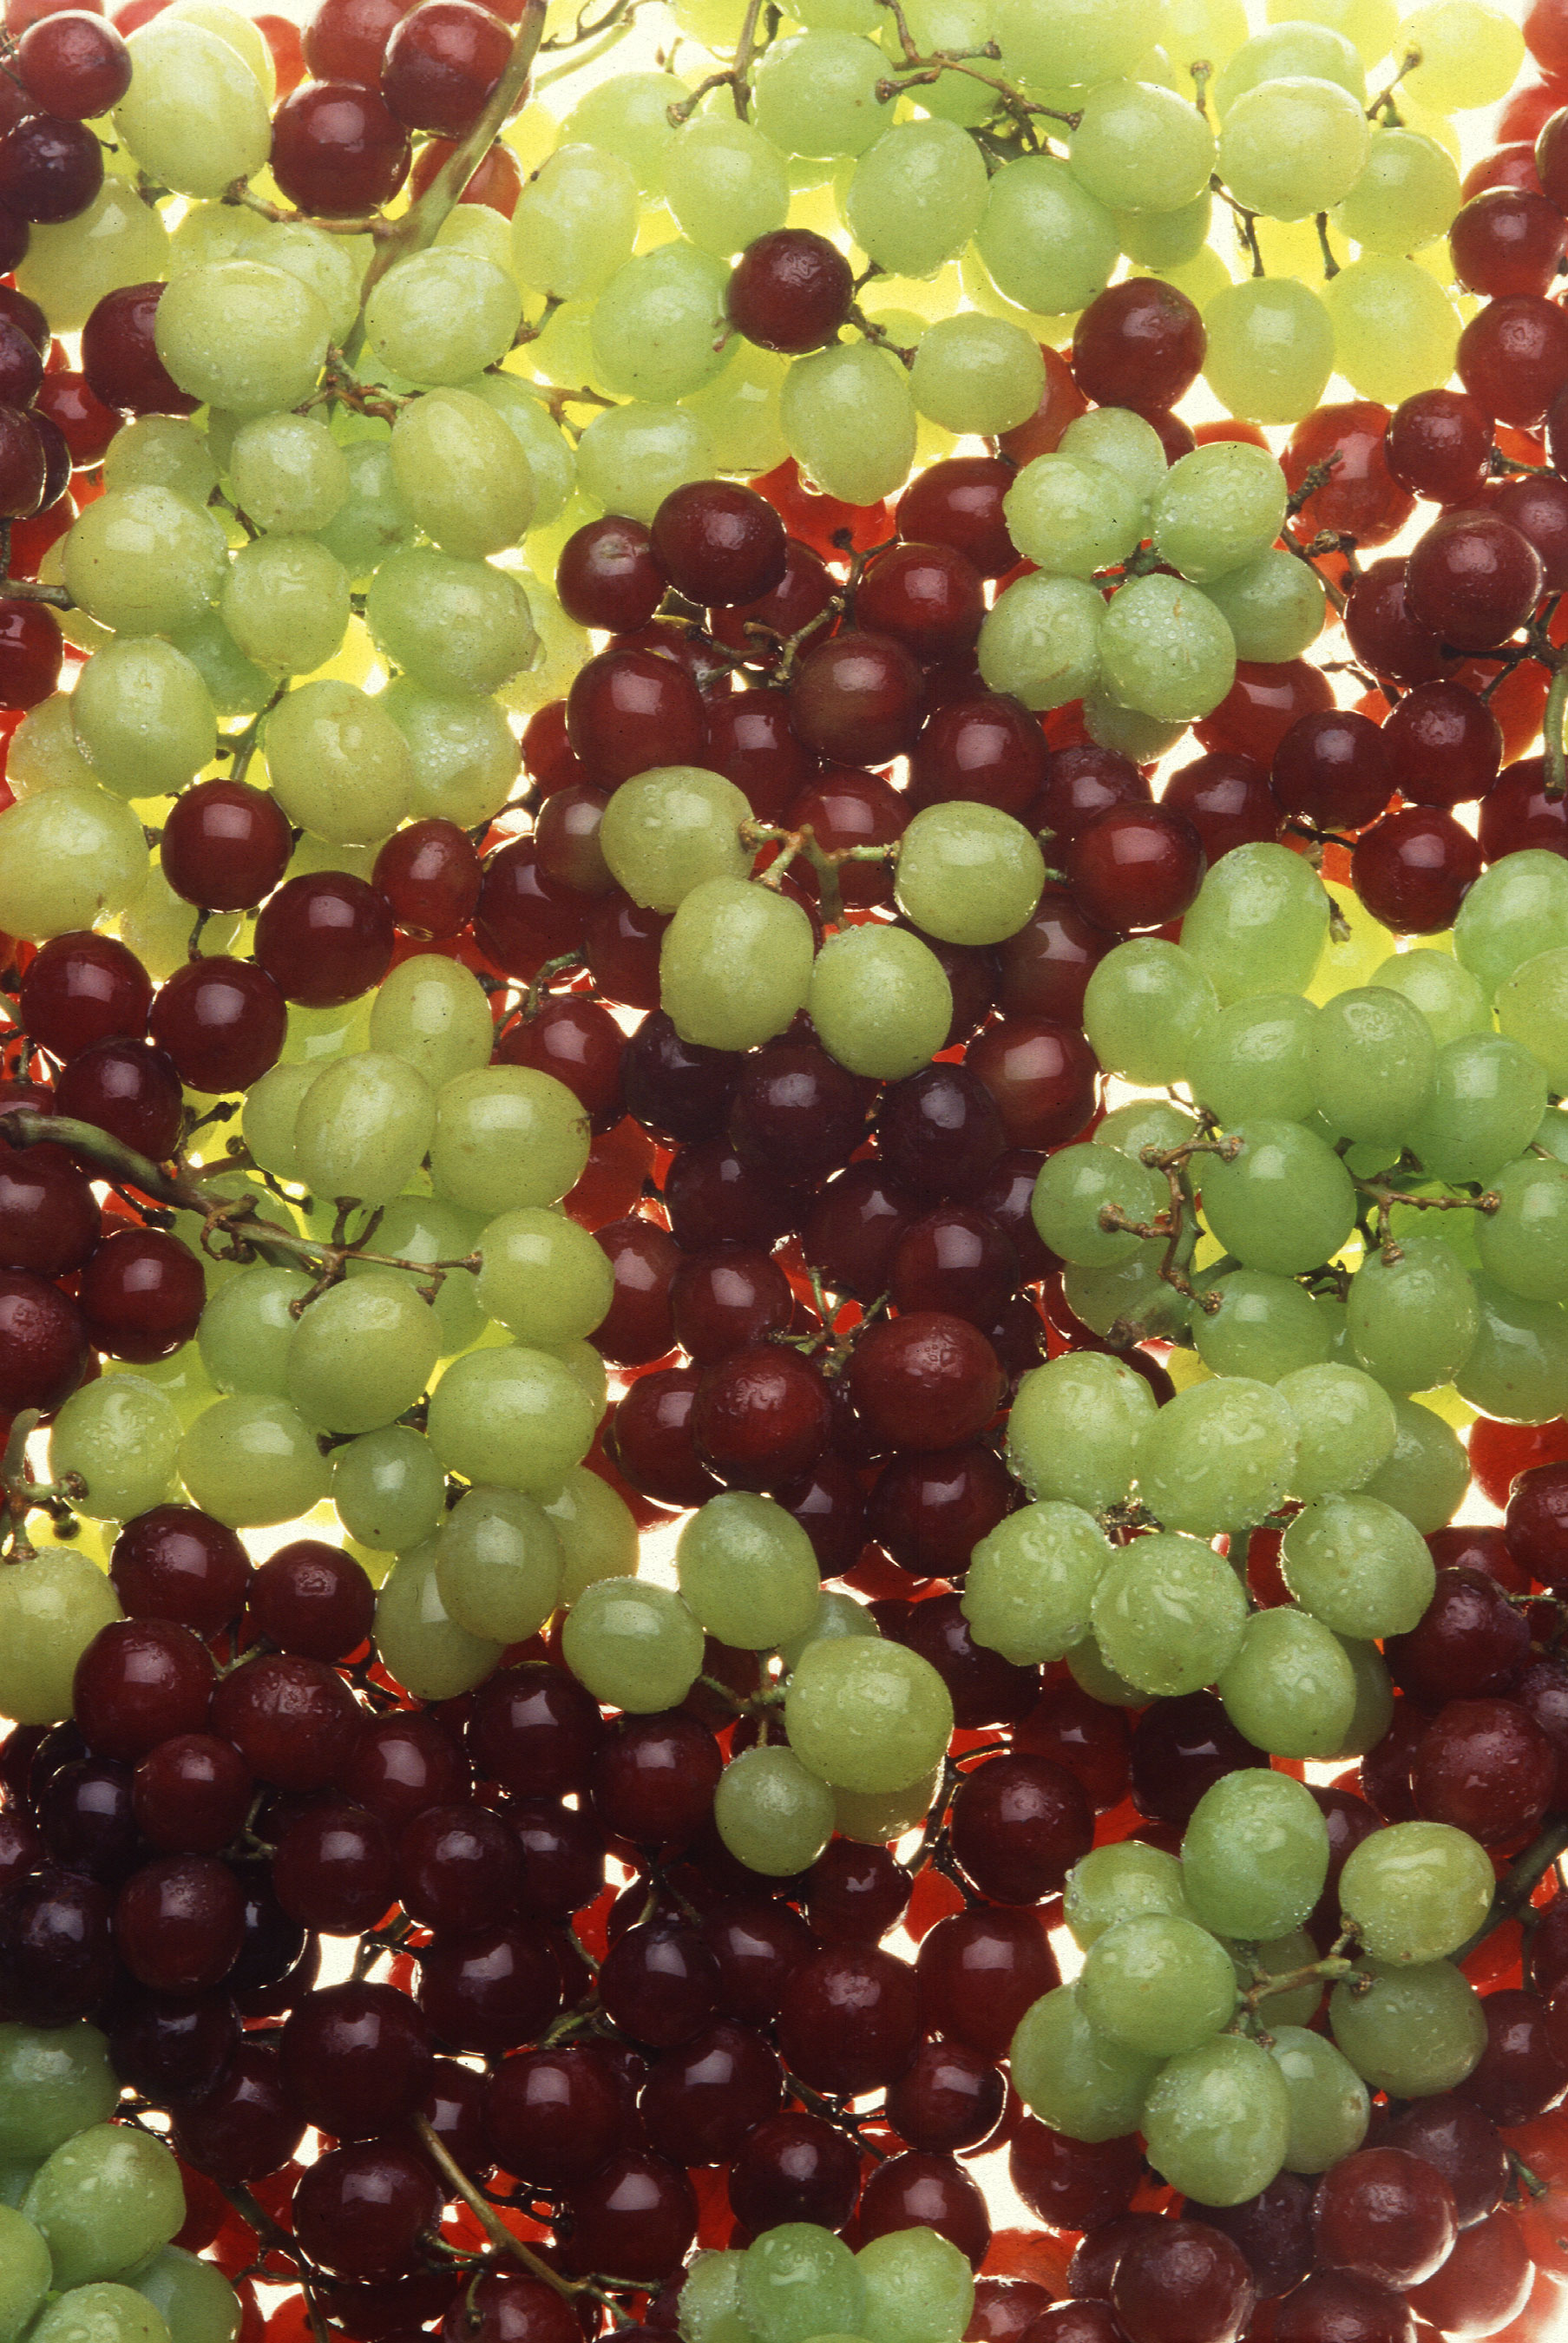 http://upload.wikimedia.org/wikipedia/commons/e/ef/Ripe_grapes.jpg